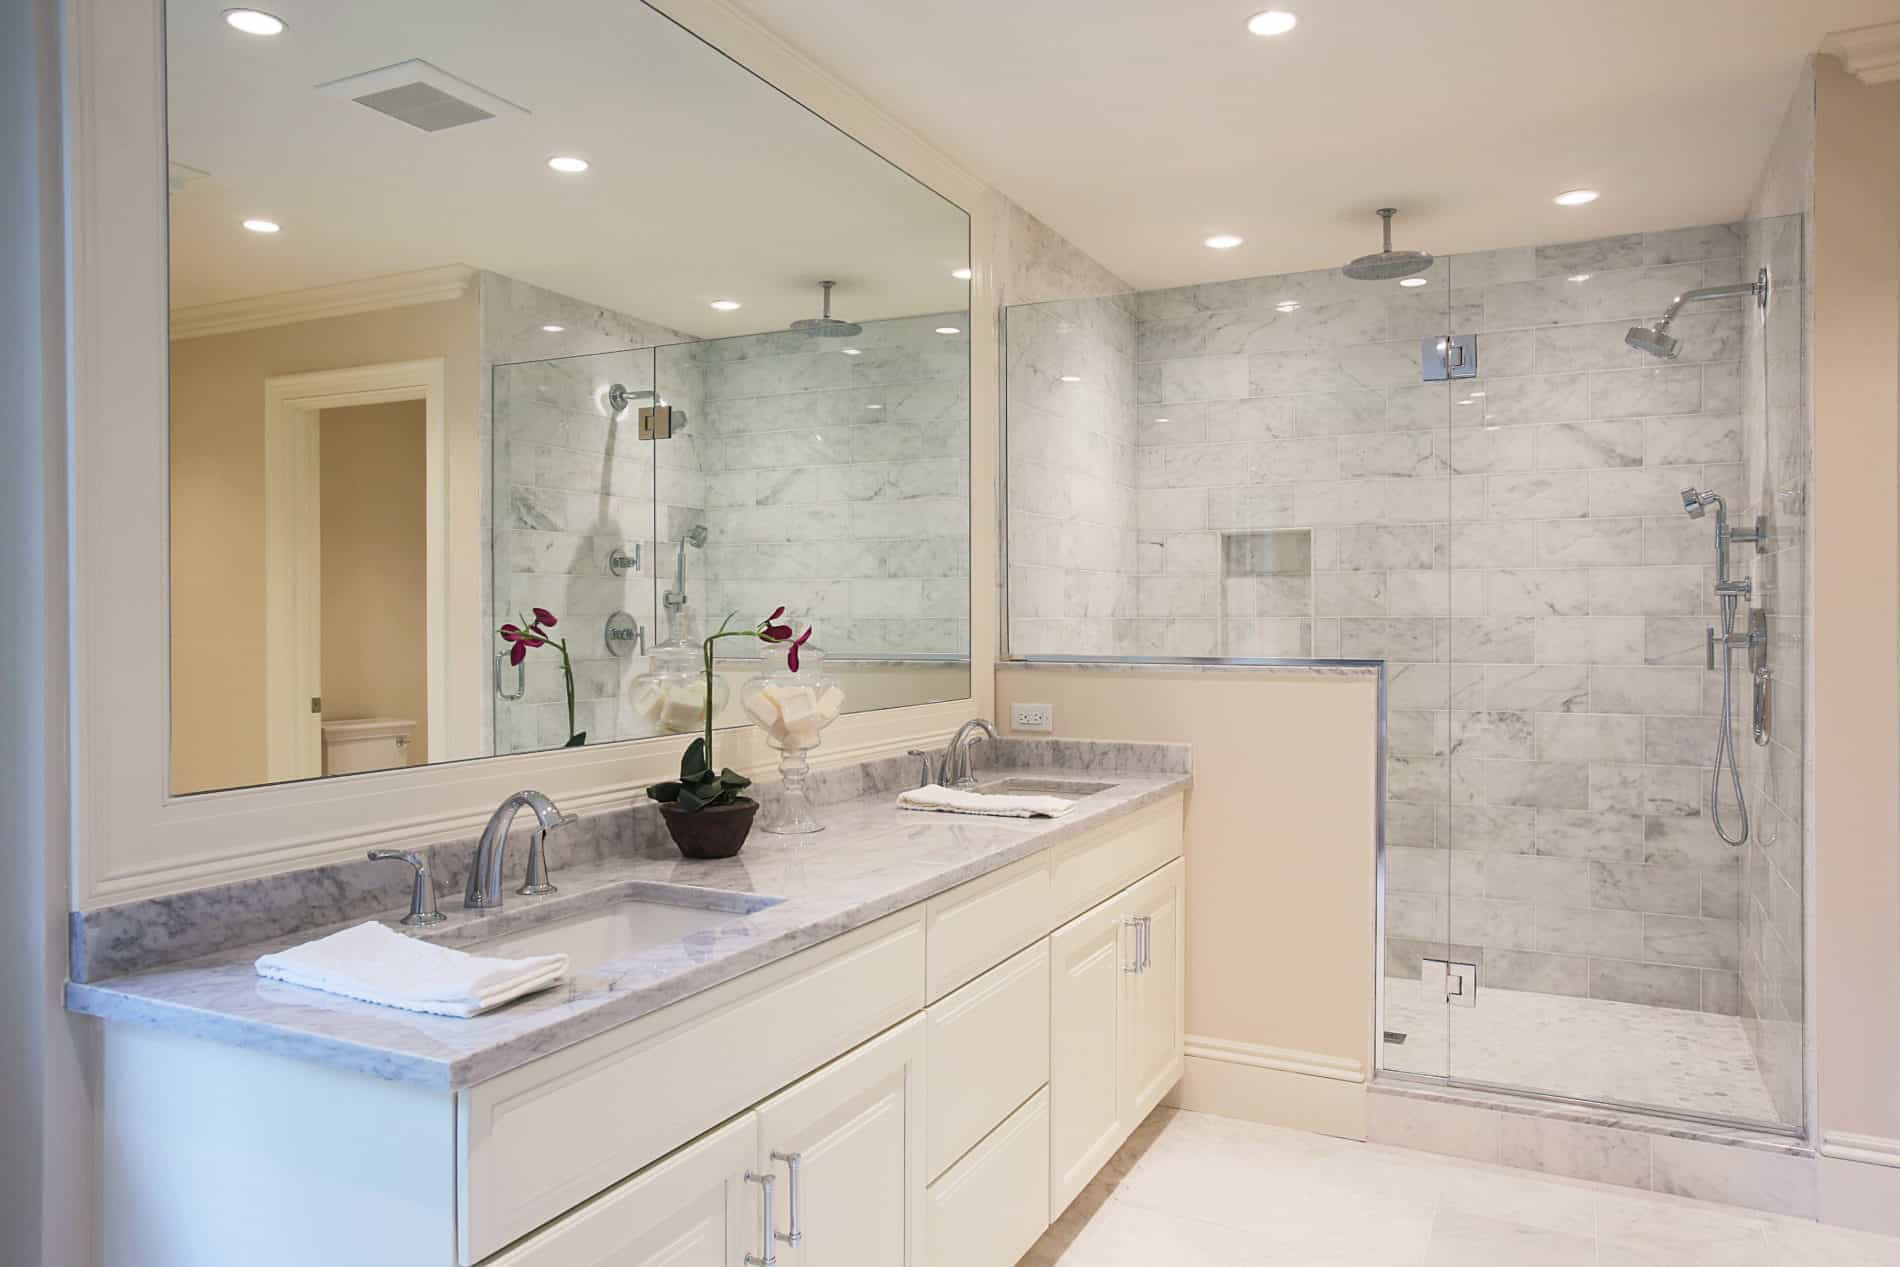 Bathroom Renovation York bathroom remodeling gallery – bsa